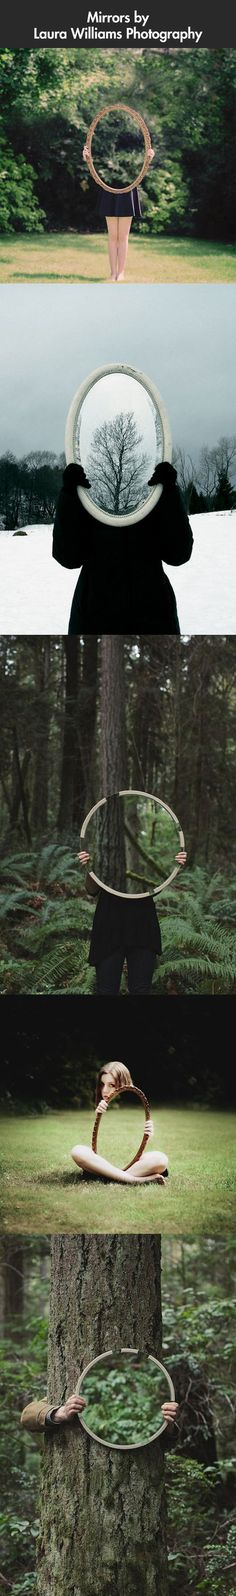 Playing with mirrors…